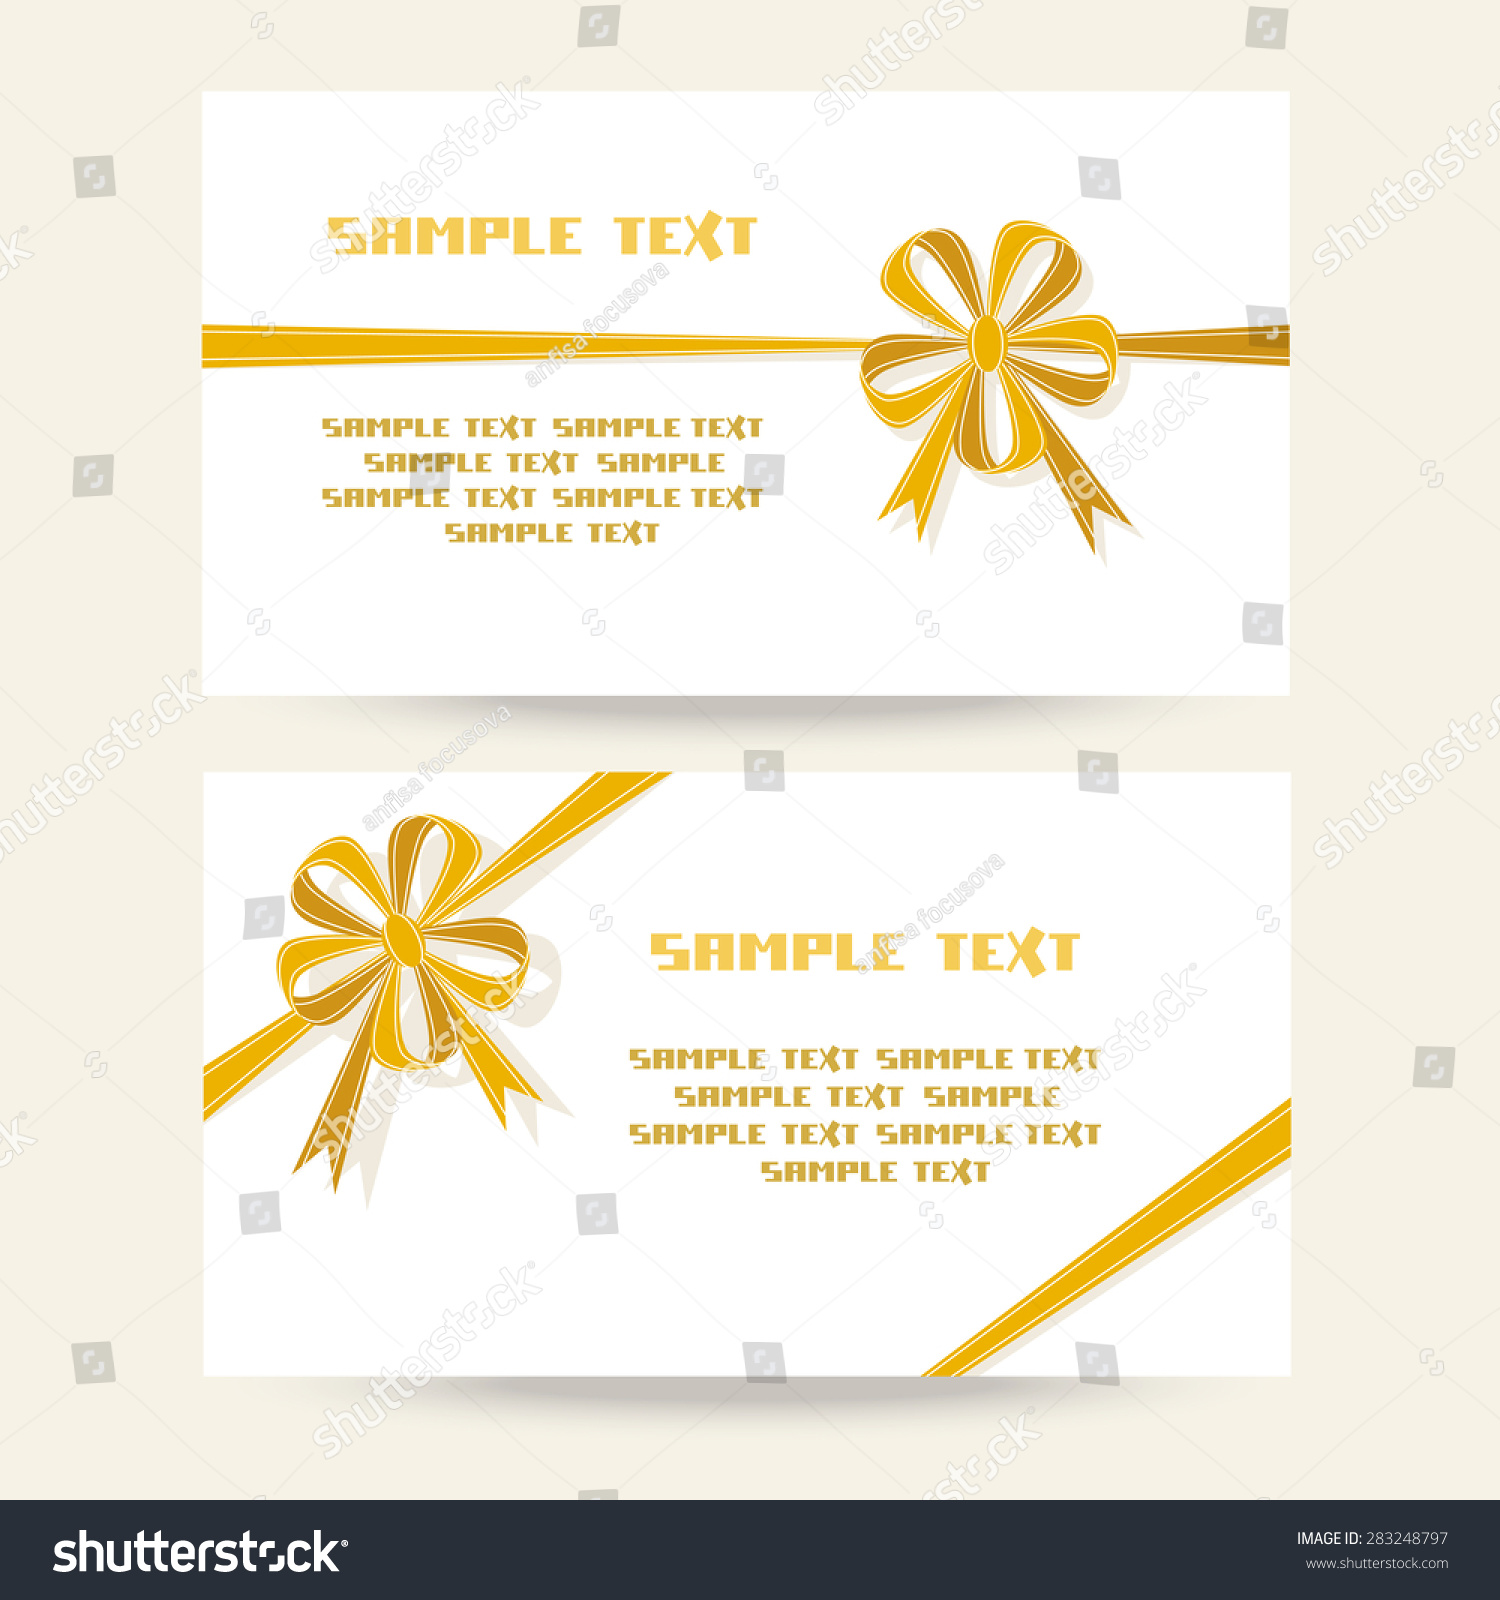 Set Of Gift Banner With Flower Gold Bow Template For Greeting Invitation Discount